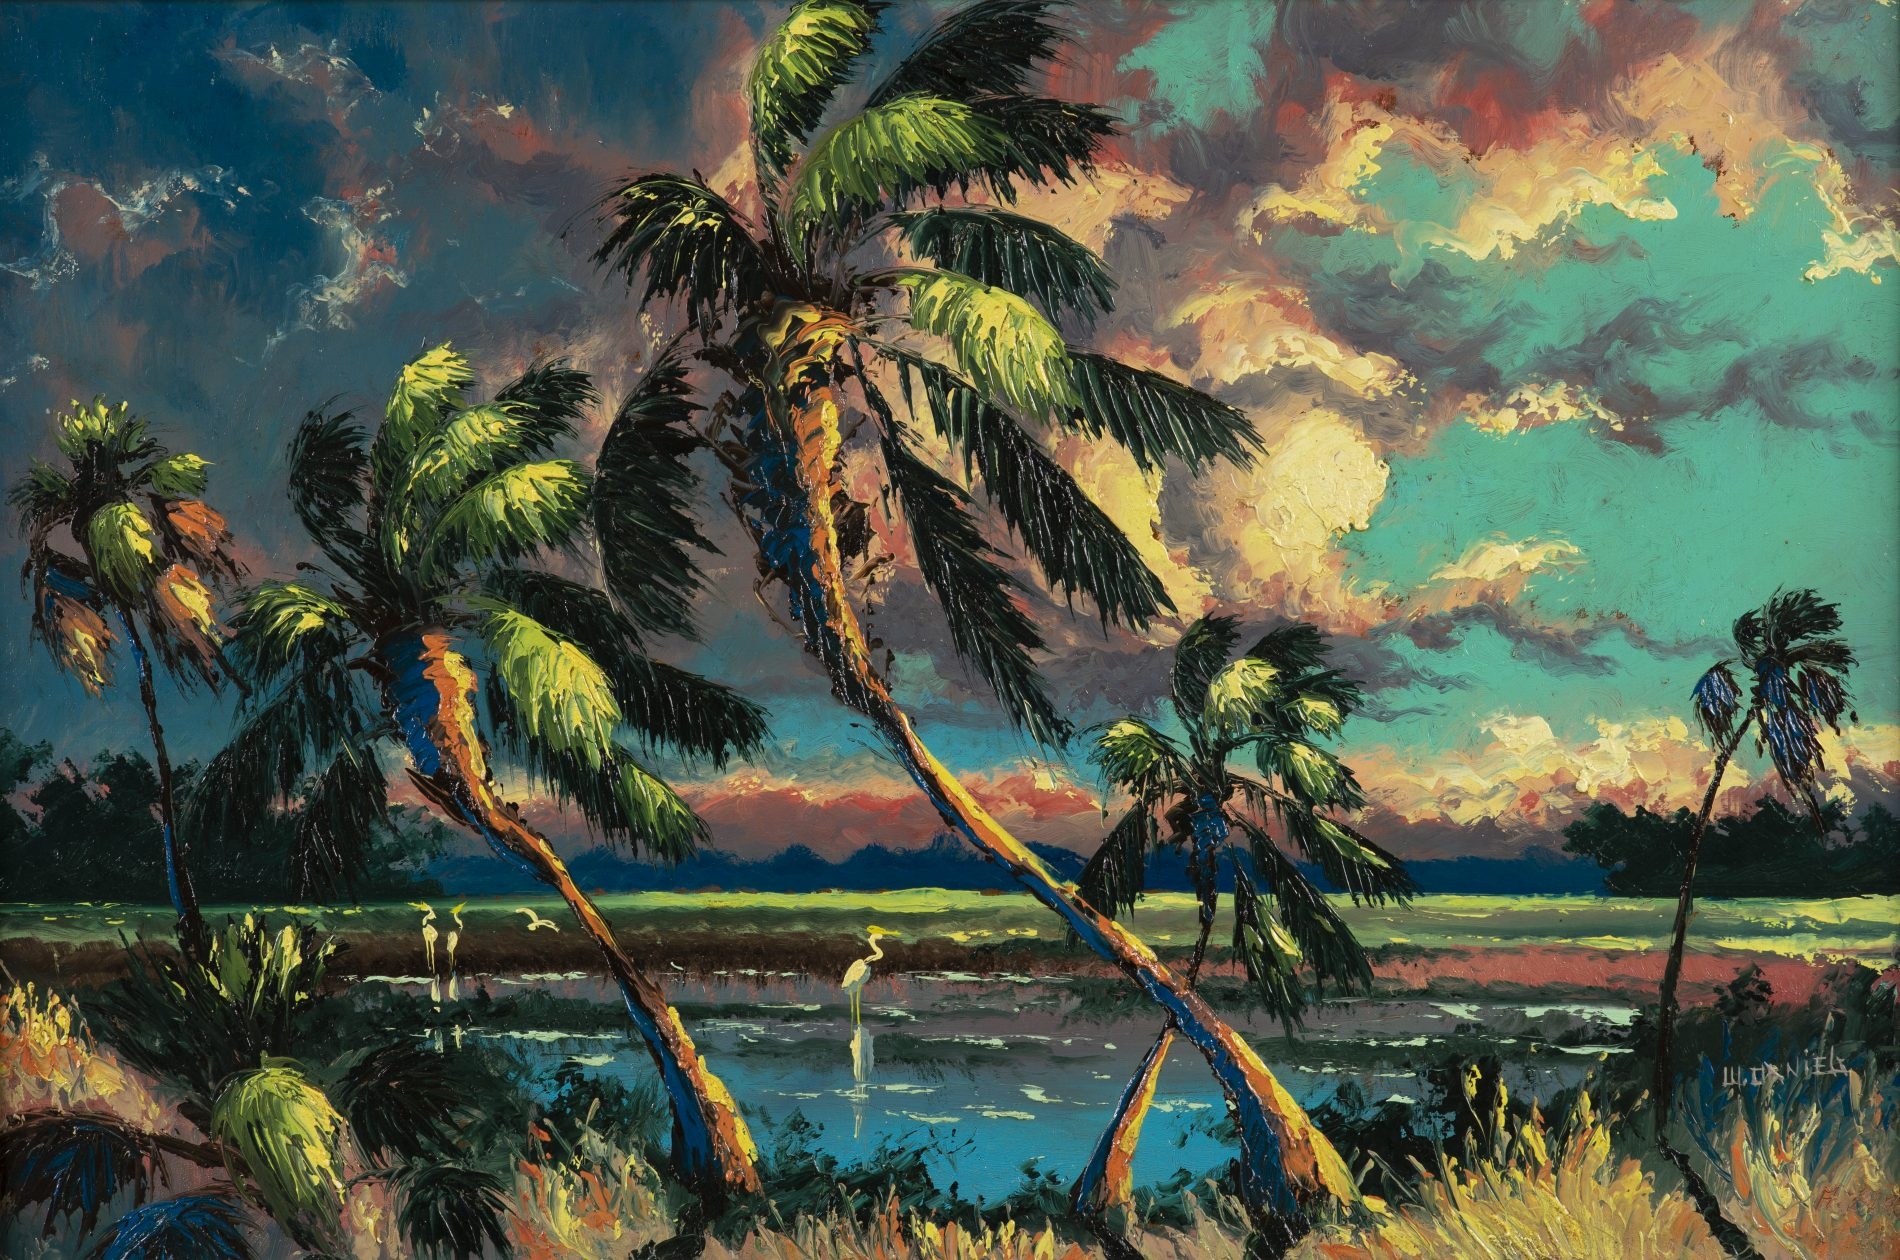 Willie Daniels Untitled [ Sabal palm shoreline ] n.d. Oil on Upson board 24 x 36 in. Courtesy of the Lightle Collection © Willie B. Daniels Photography by Tariq Gibran